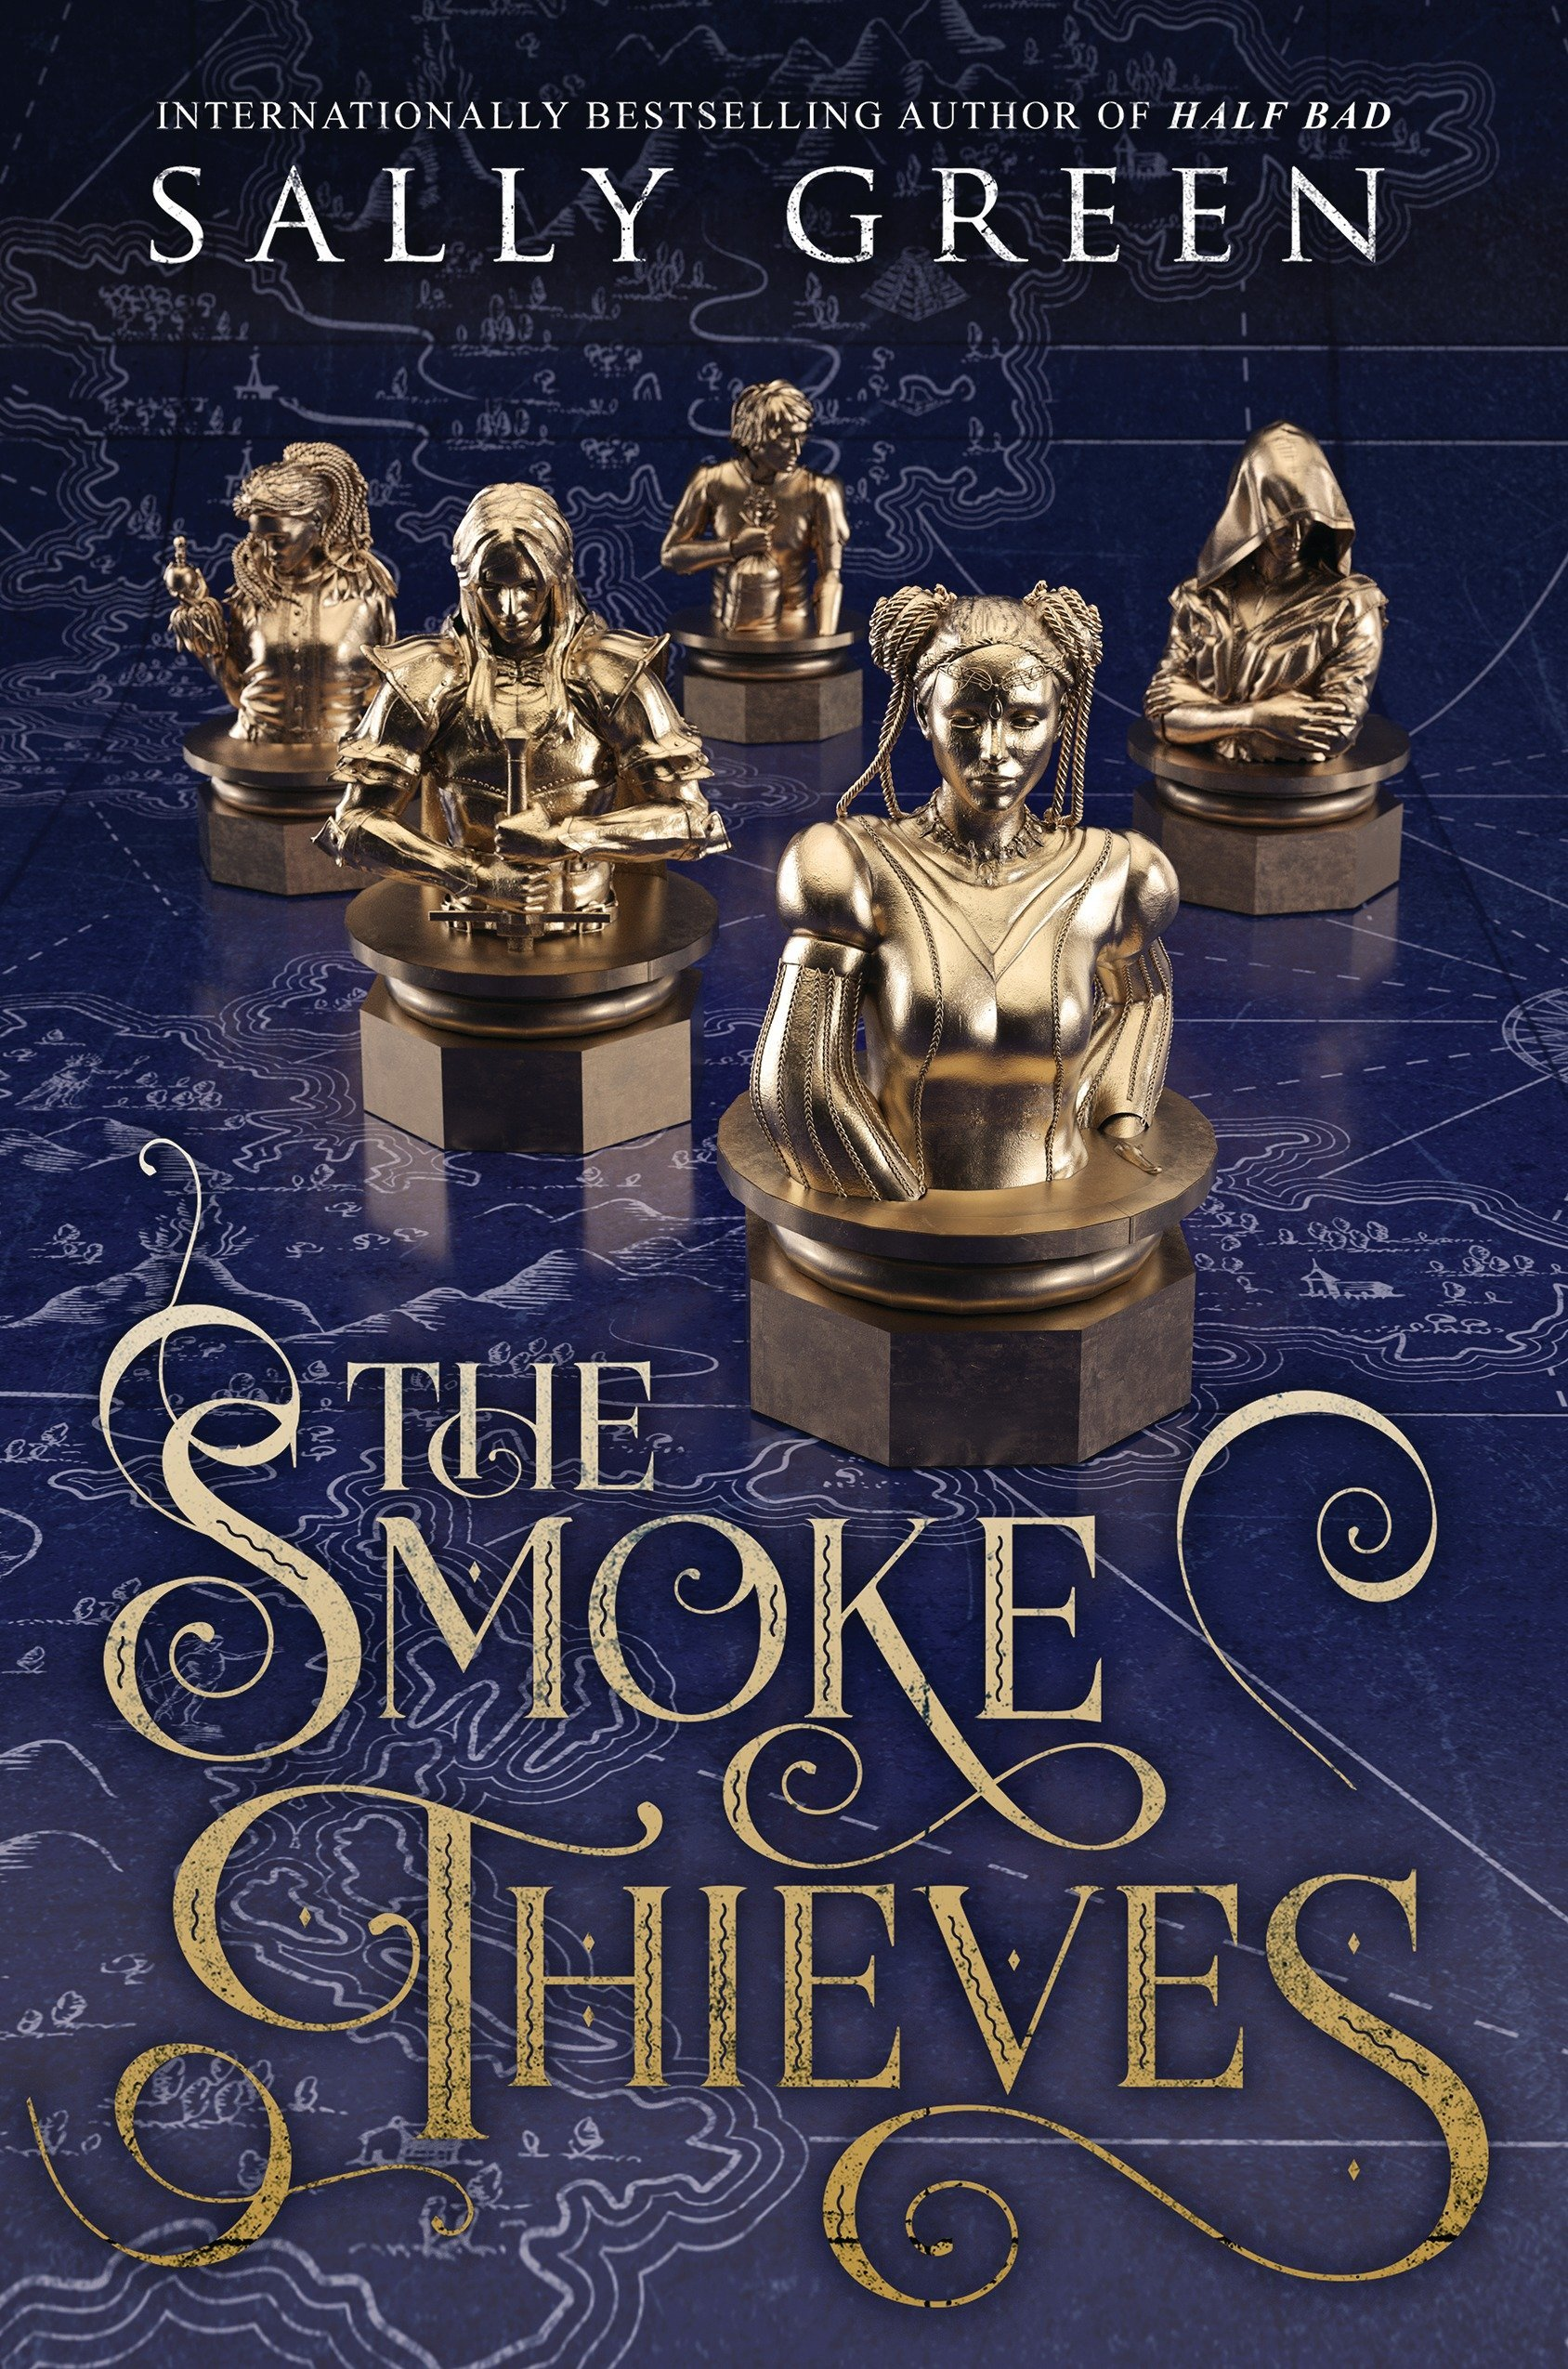 Amazon.com: The Smoke Thieves (9780425290217): Green, Sally: Books